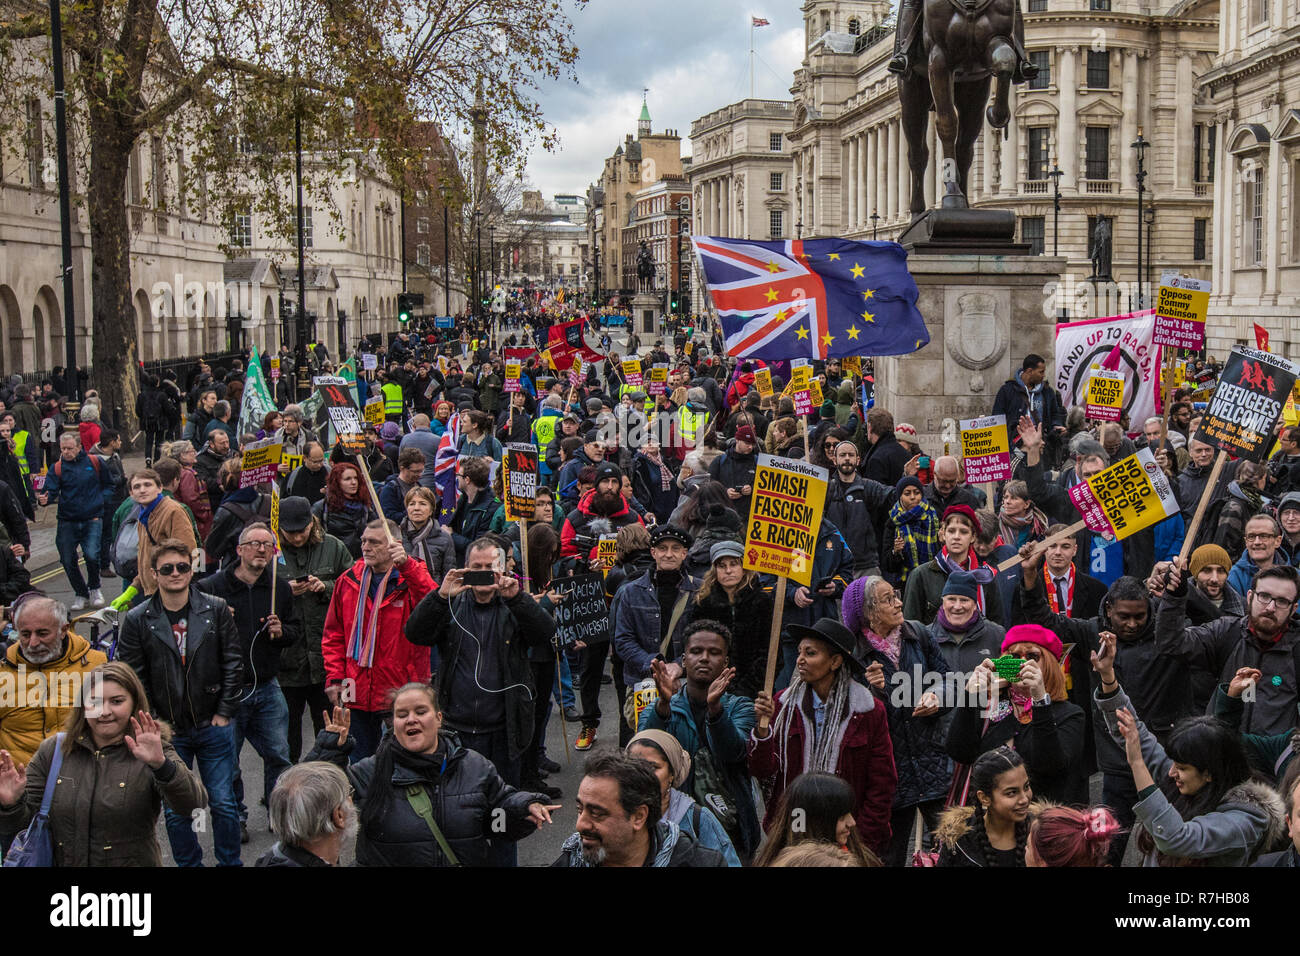 London, UK. 9th Dec, 2018. Thousands marched in a anti-racist counter demonstration against the far right organised 'Brexit betrayal' march in central London and heavily outnumbered the racist UKIP led march. Credit: David Rowe/Alamy Live News Stock Photo